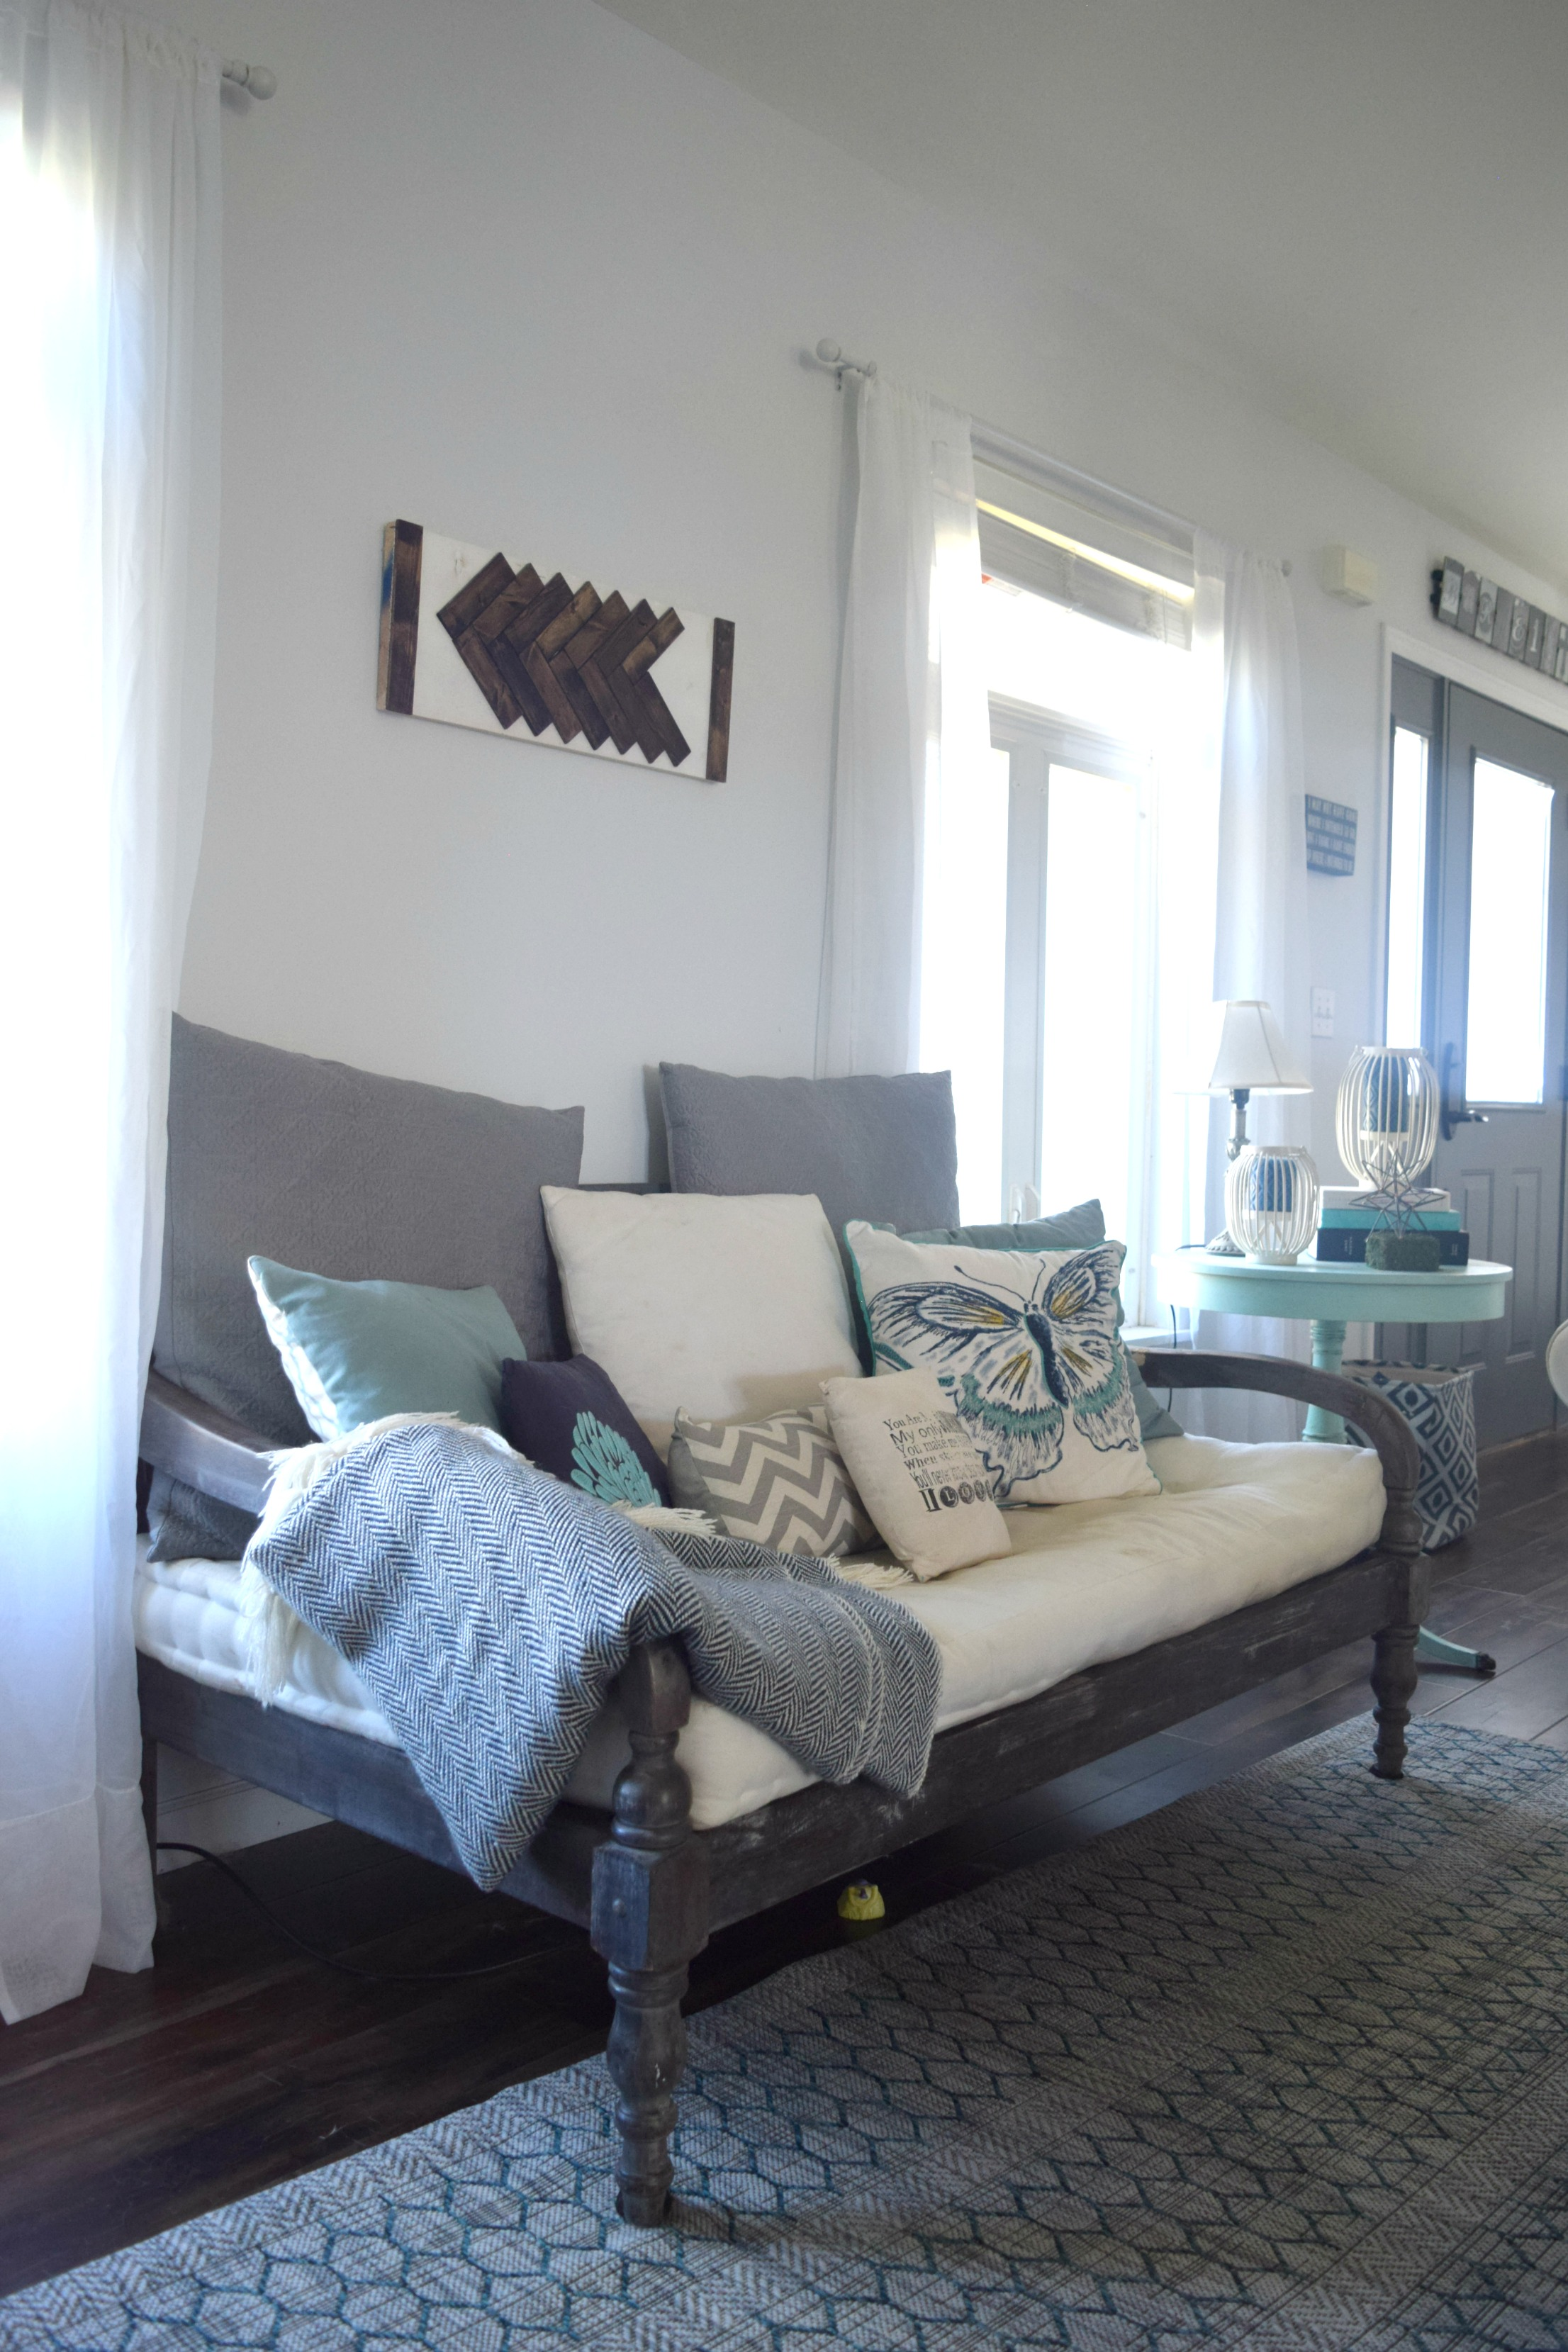 Teal home decor ideas our house now a home for Teal home decor